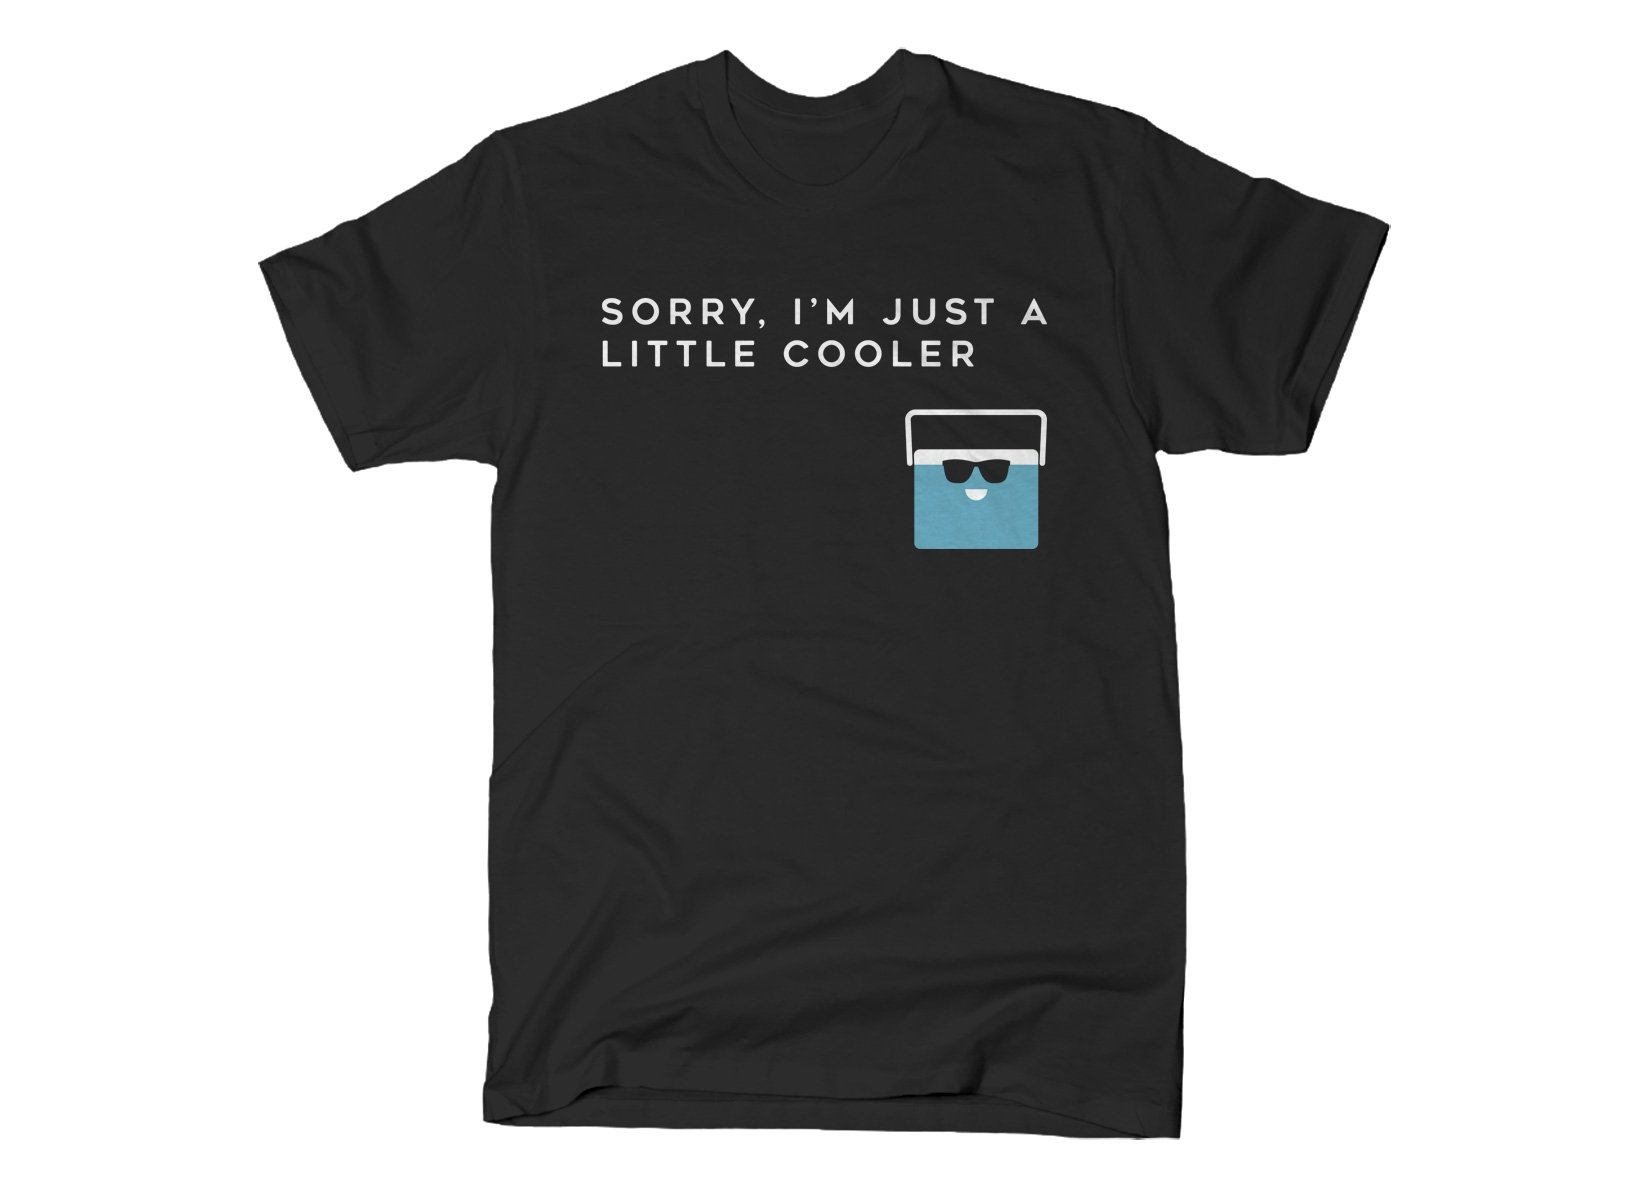 Sorry, I'm Just A Little Cooler on Mens T-Shirt